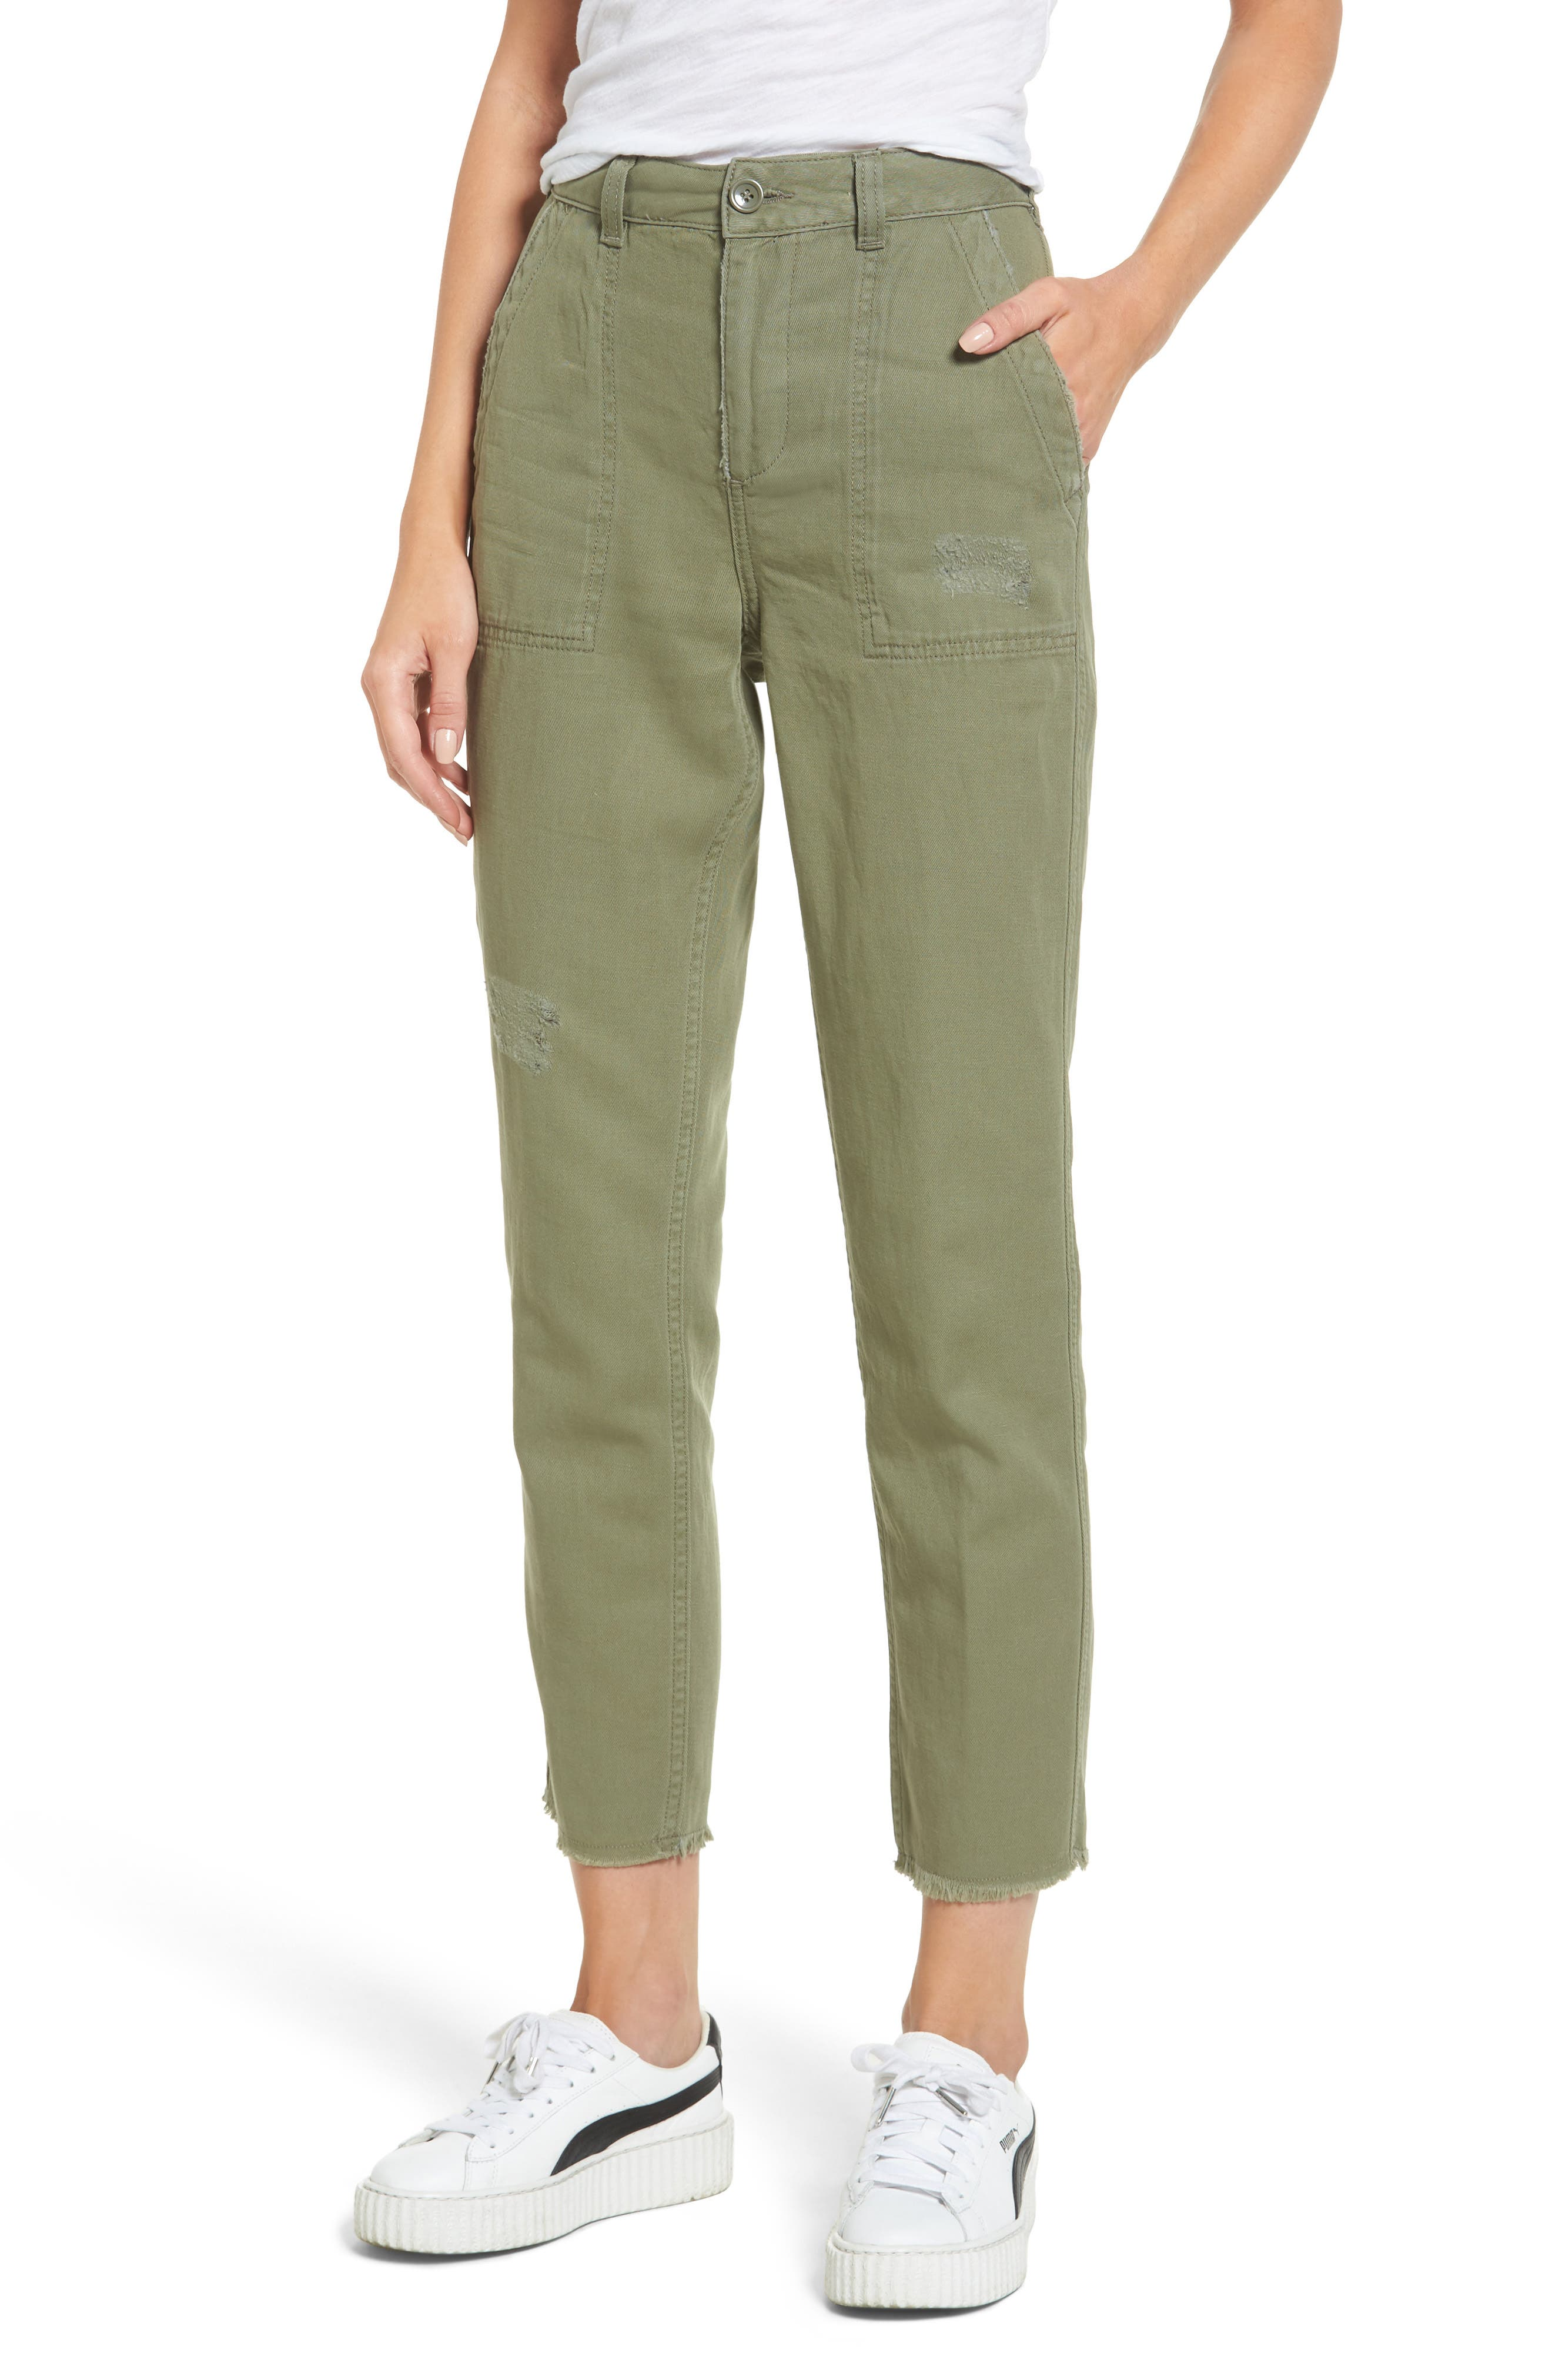 Topshop Luca Ulility Trousers